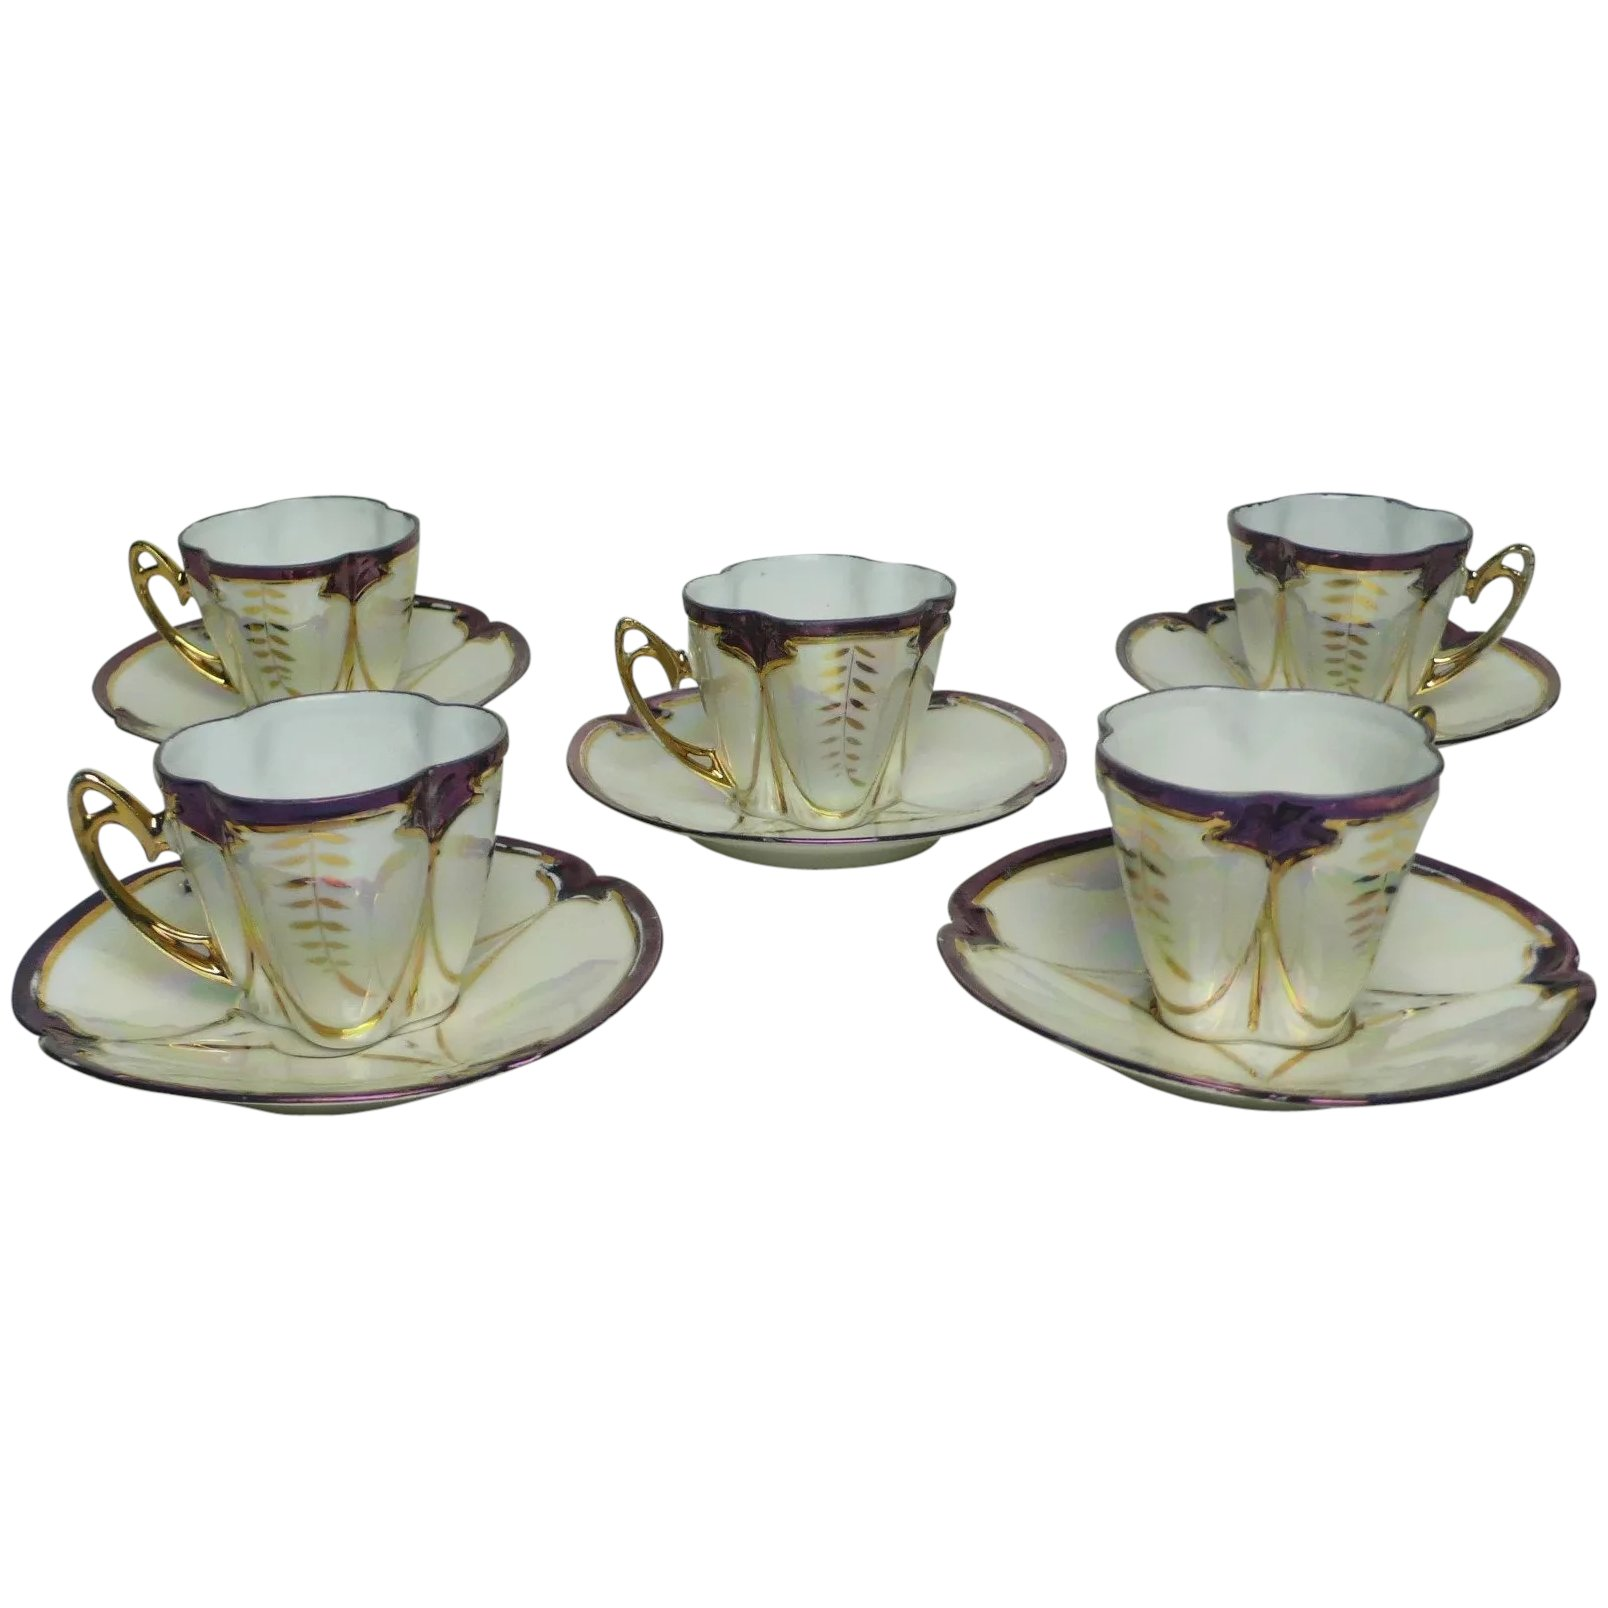 5 - Set of 5 Art Nouveau Style Coffee Cups and Saucers in Fine Bone  China Porcelain, German or Luxembourg Origin